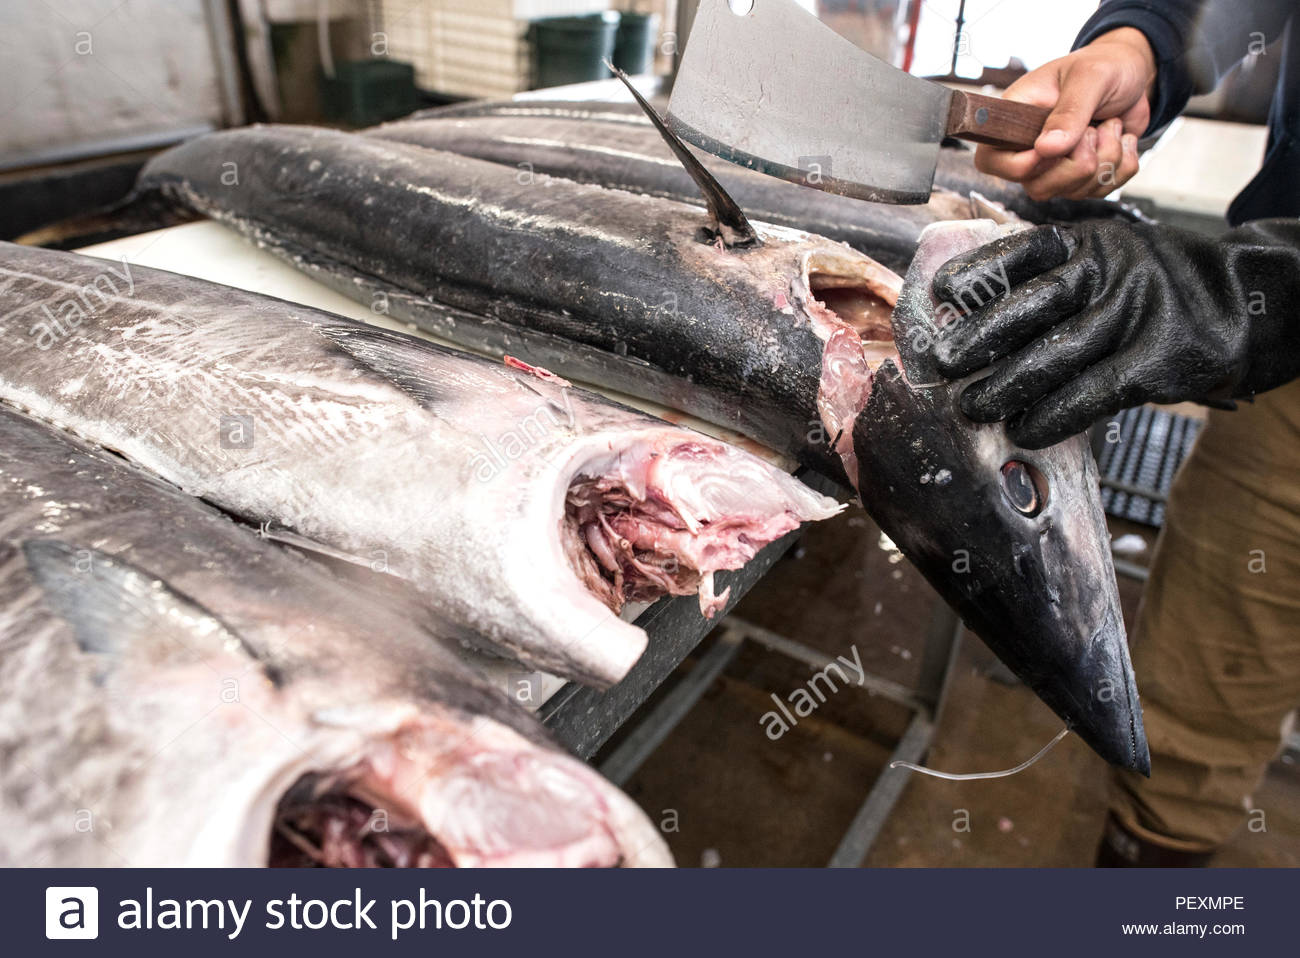 Fish monger chopping head off ono fish at fish market, San Diego, California, USA - Stock Image